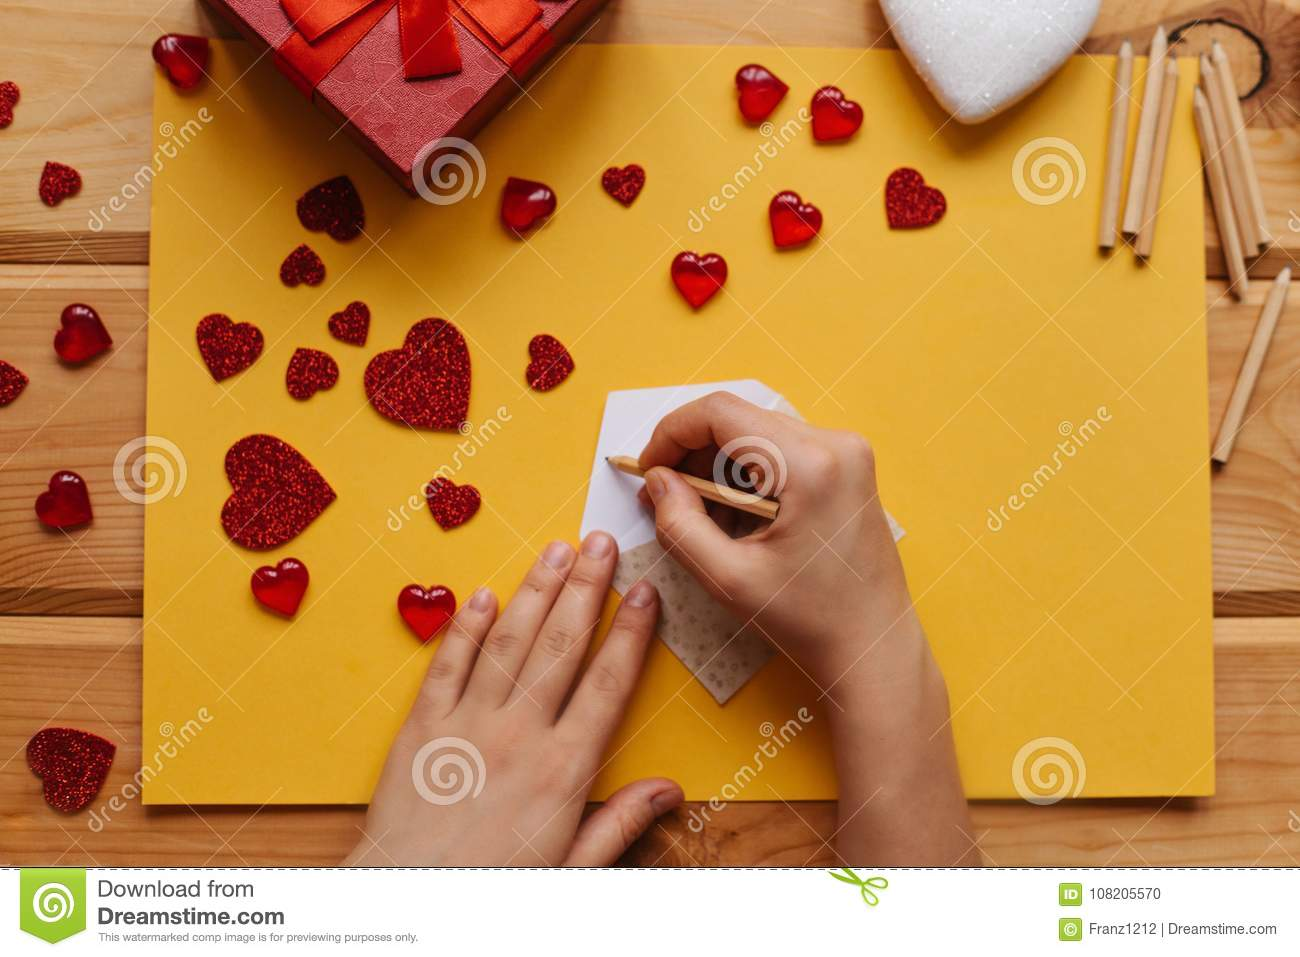 The girl signs an envelope with congratulations on the holiday to send it, beside on the wooden surface lie gifts